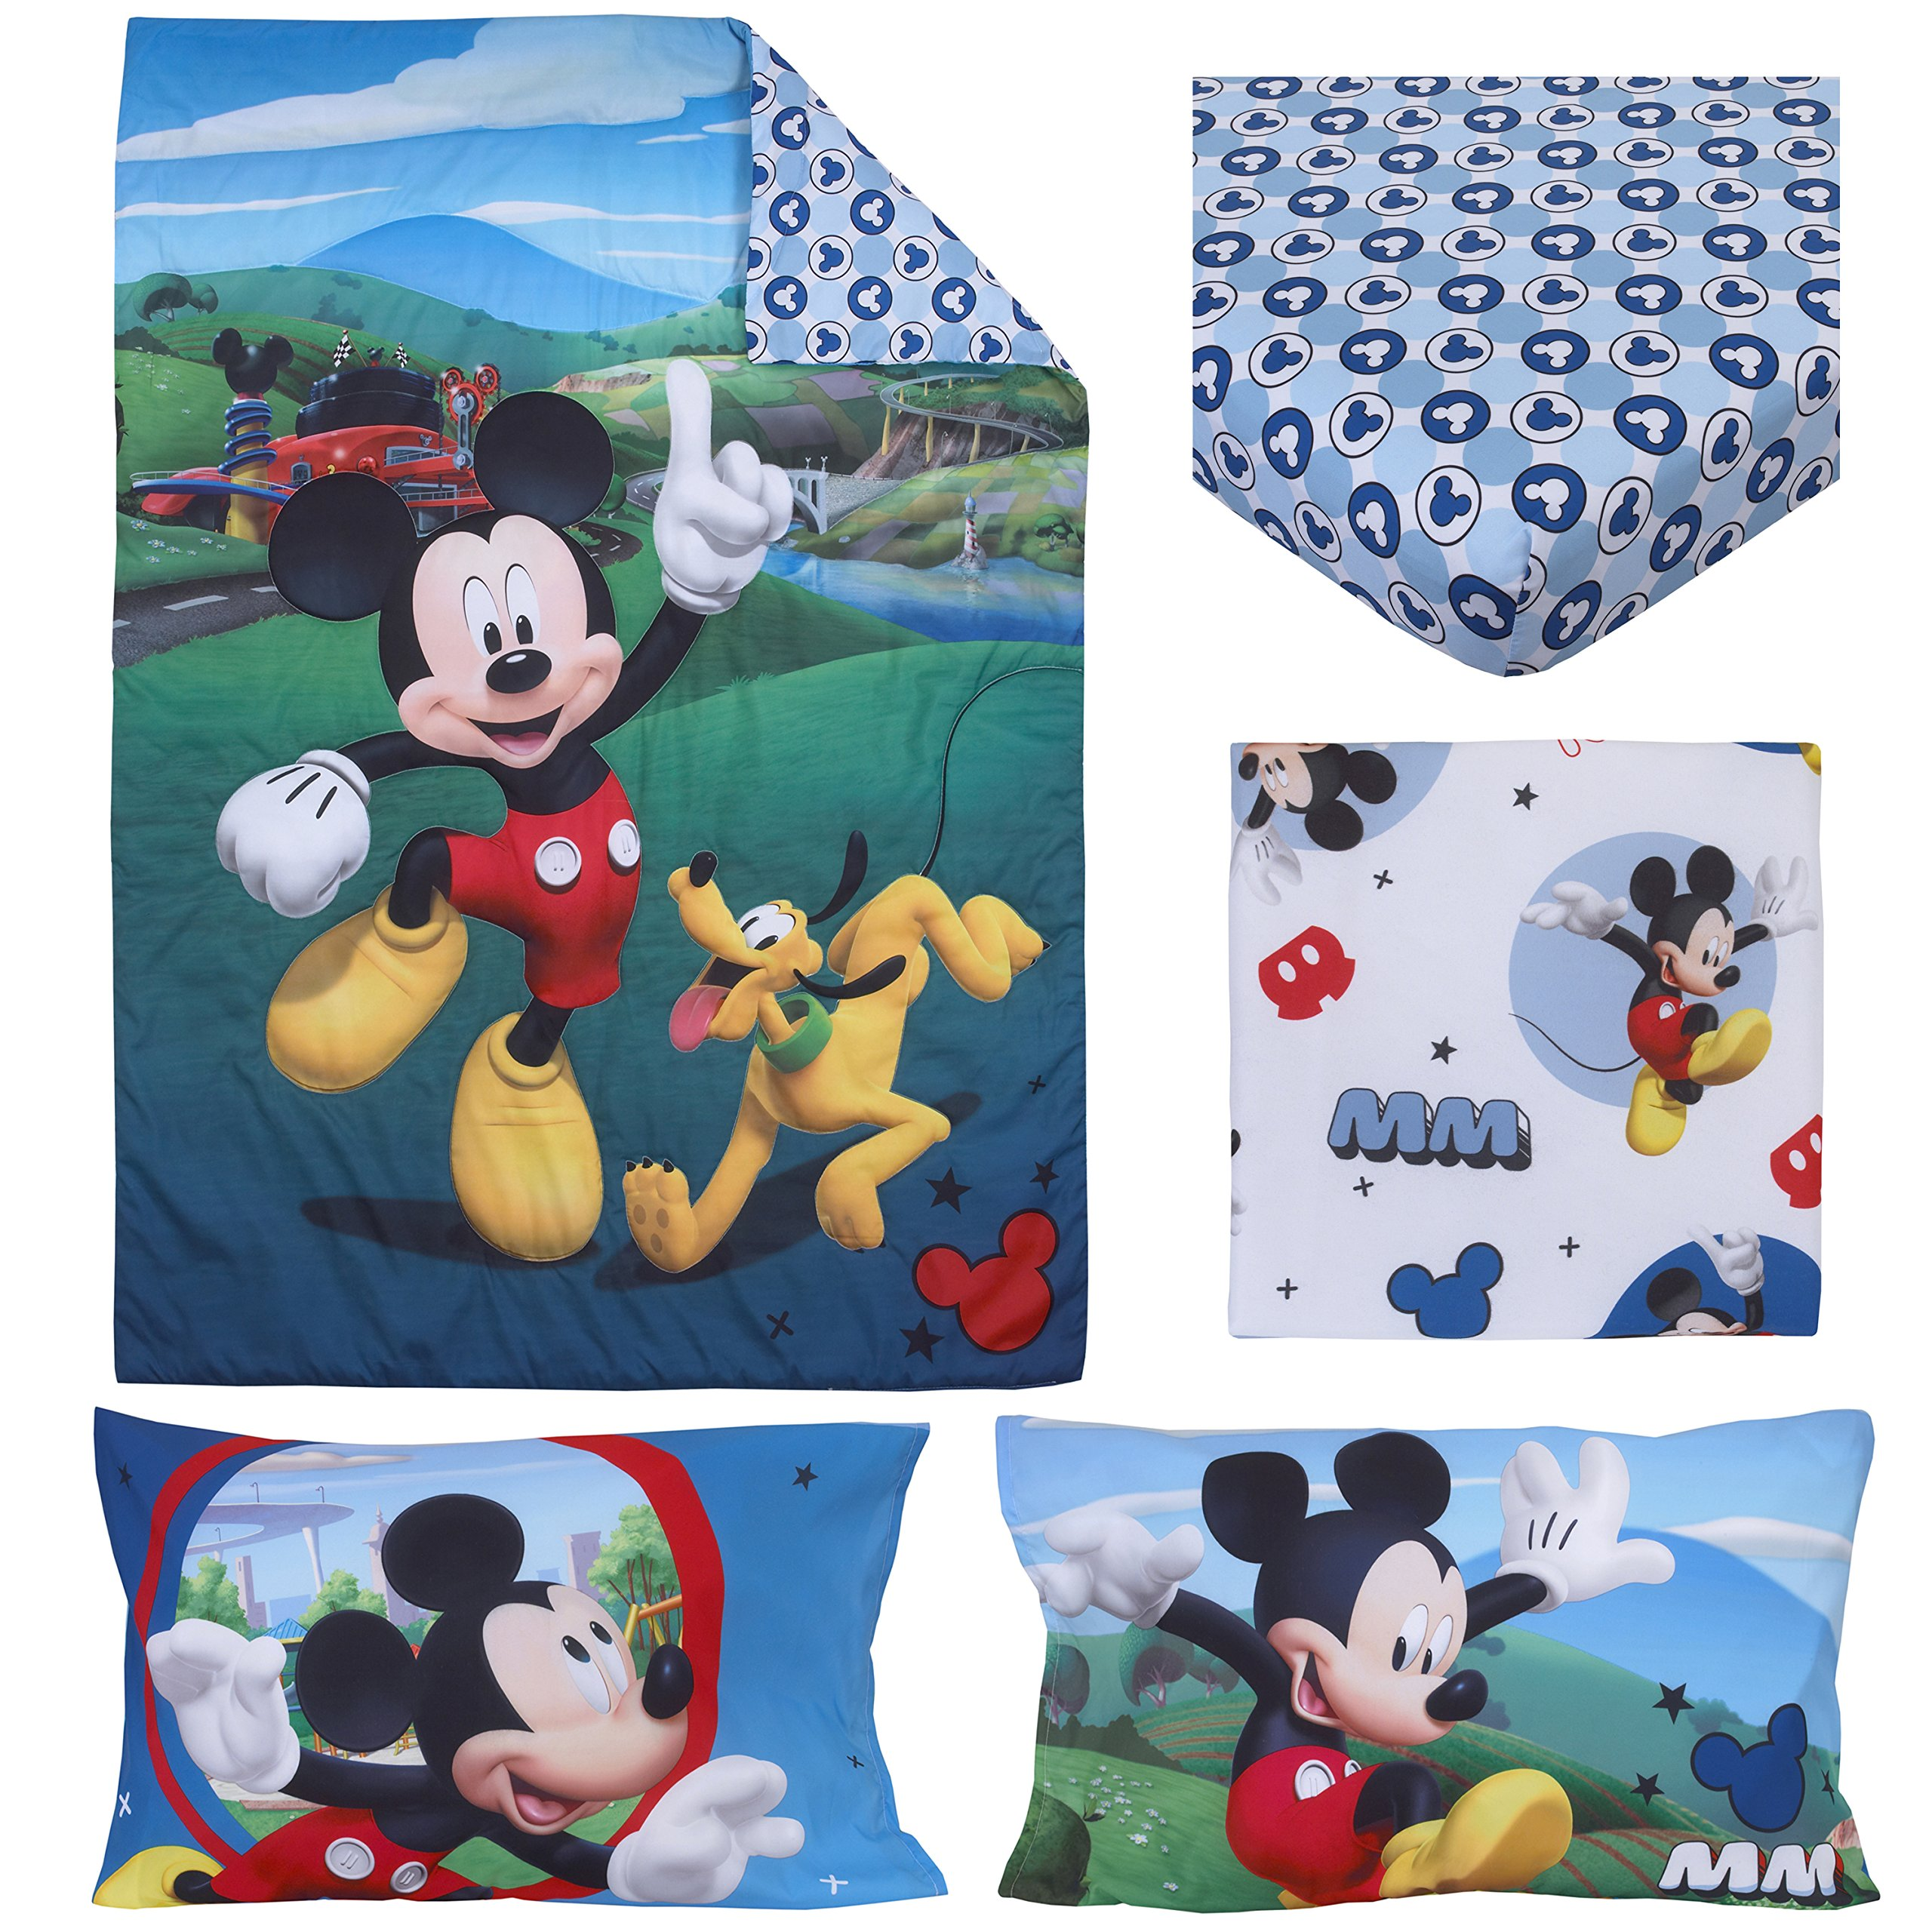 Disney 4 Piece Toddler Bedding Set, Mickey Mouse Playhouse, Blue/White,  Standard